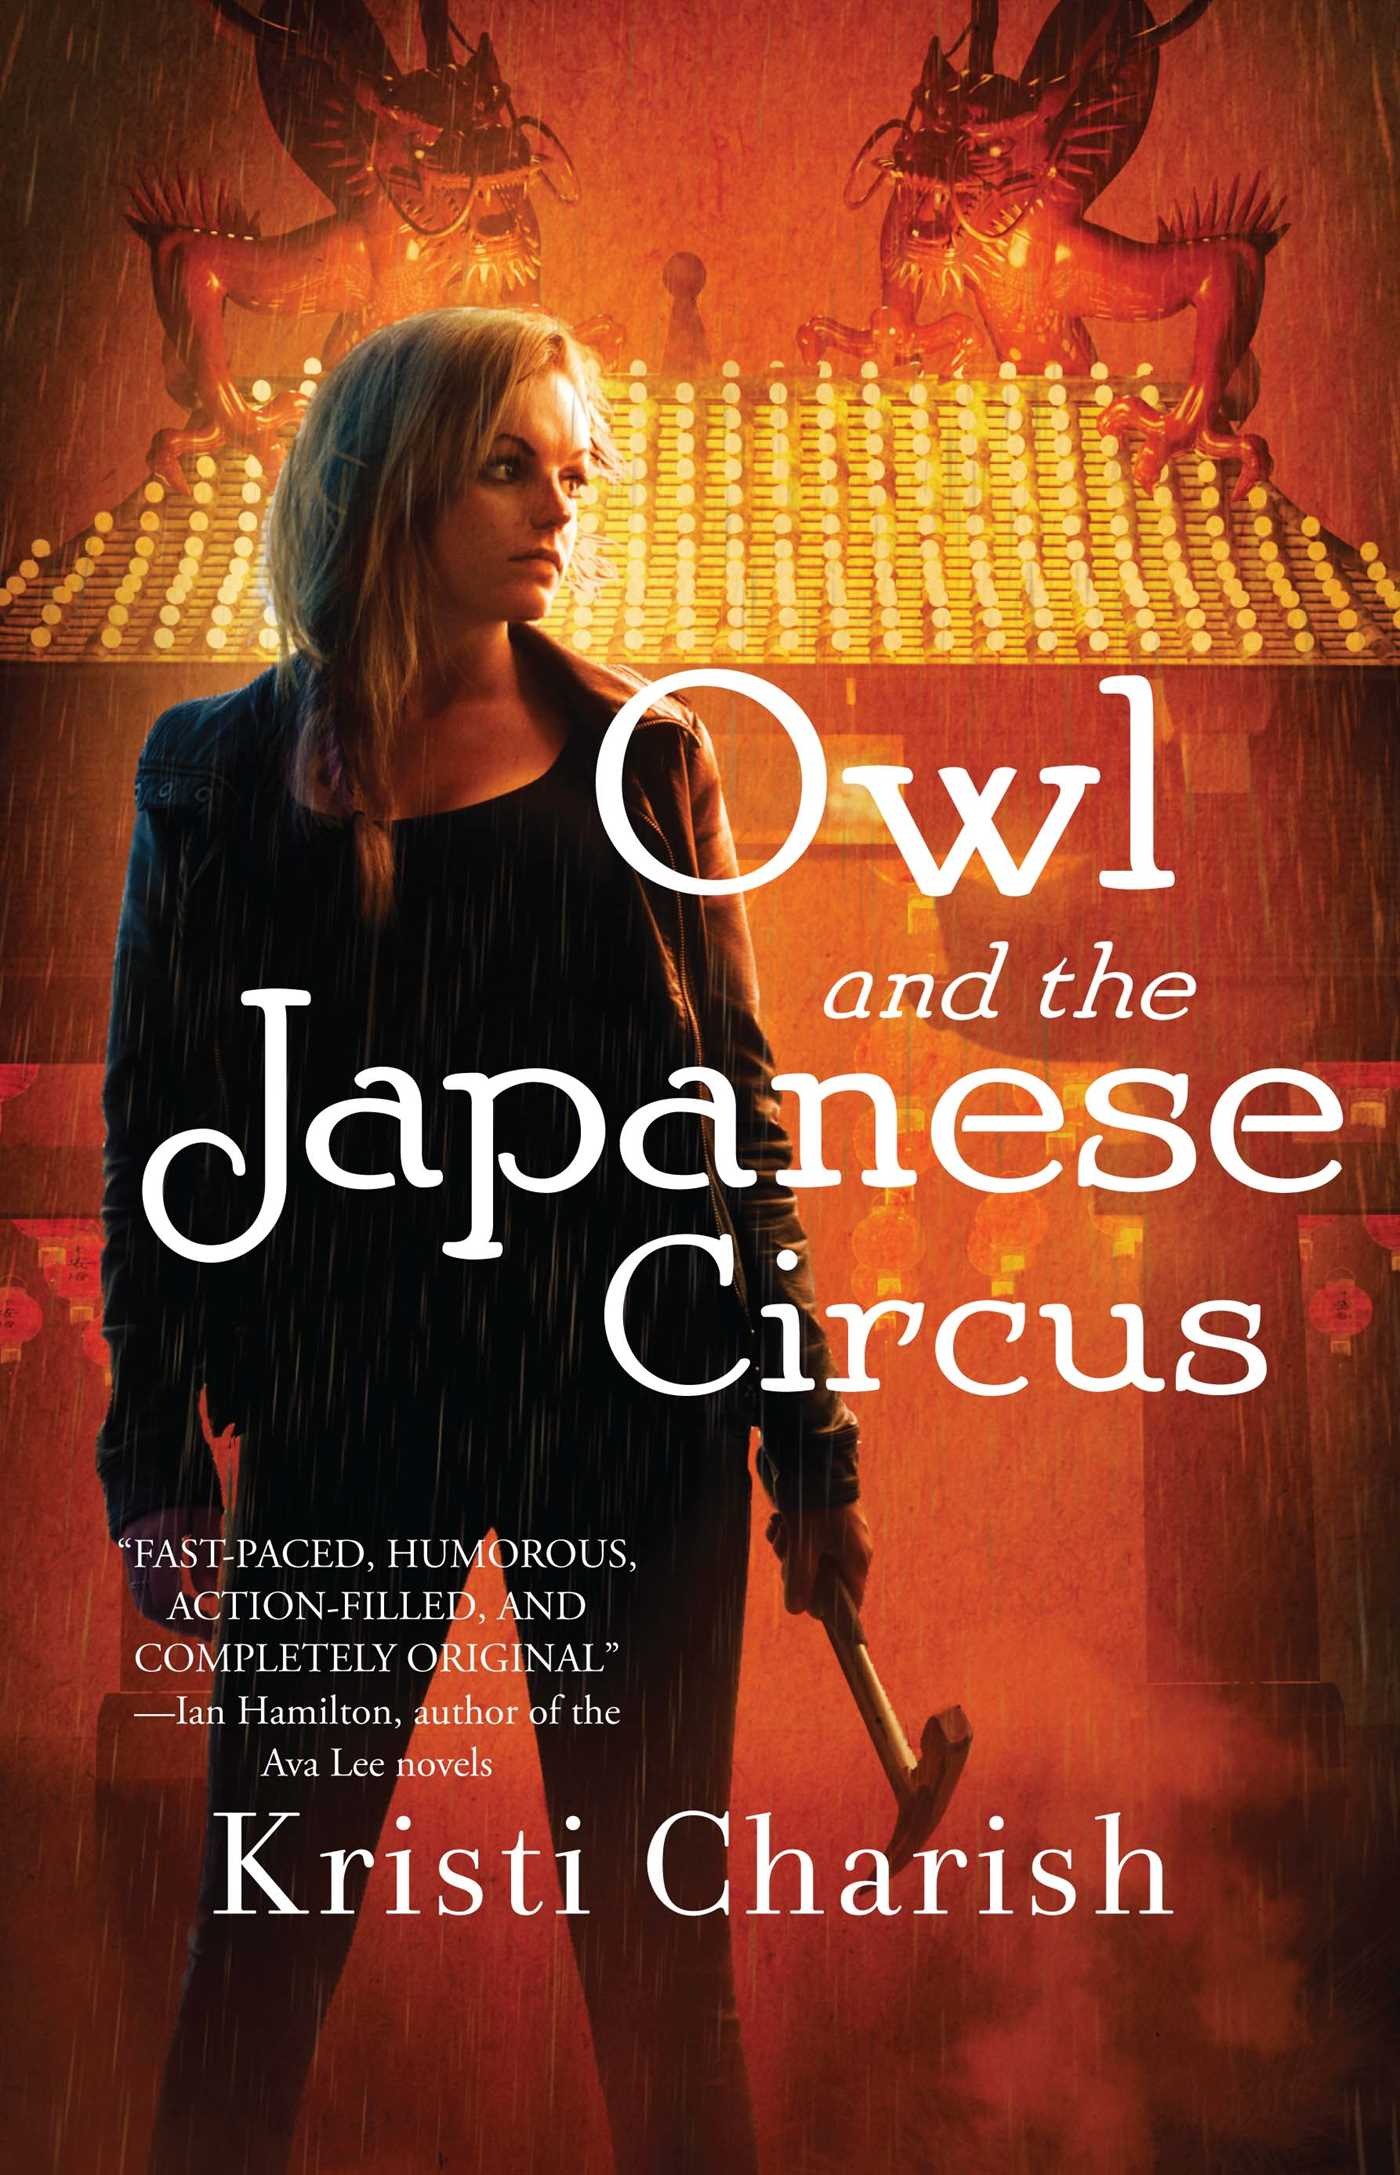 Owl-and-the-japanese-circus-9781476794990_hr